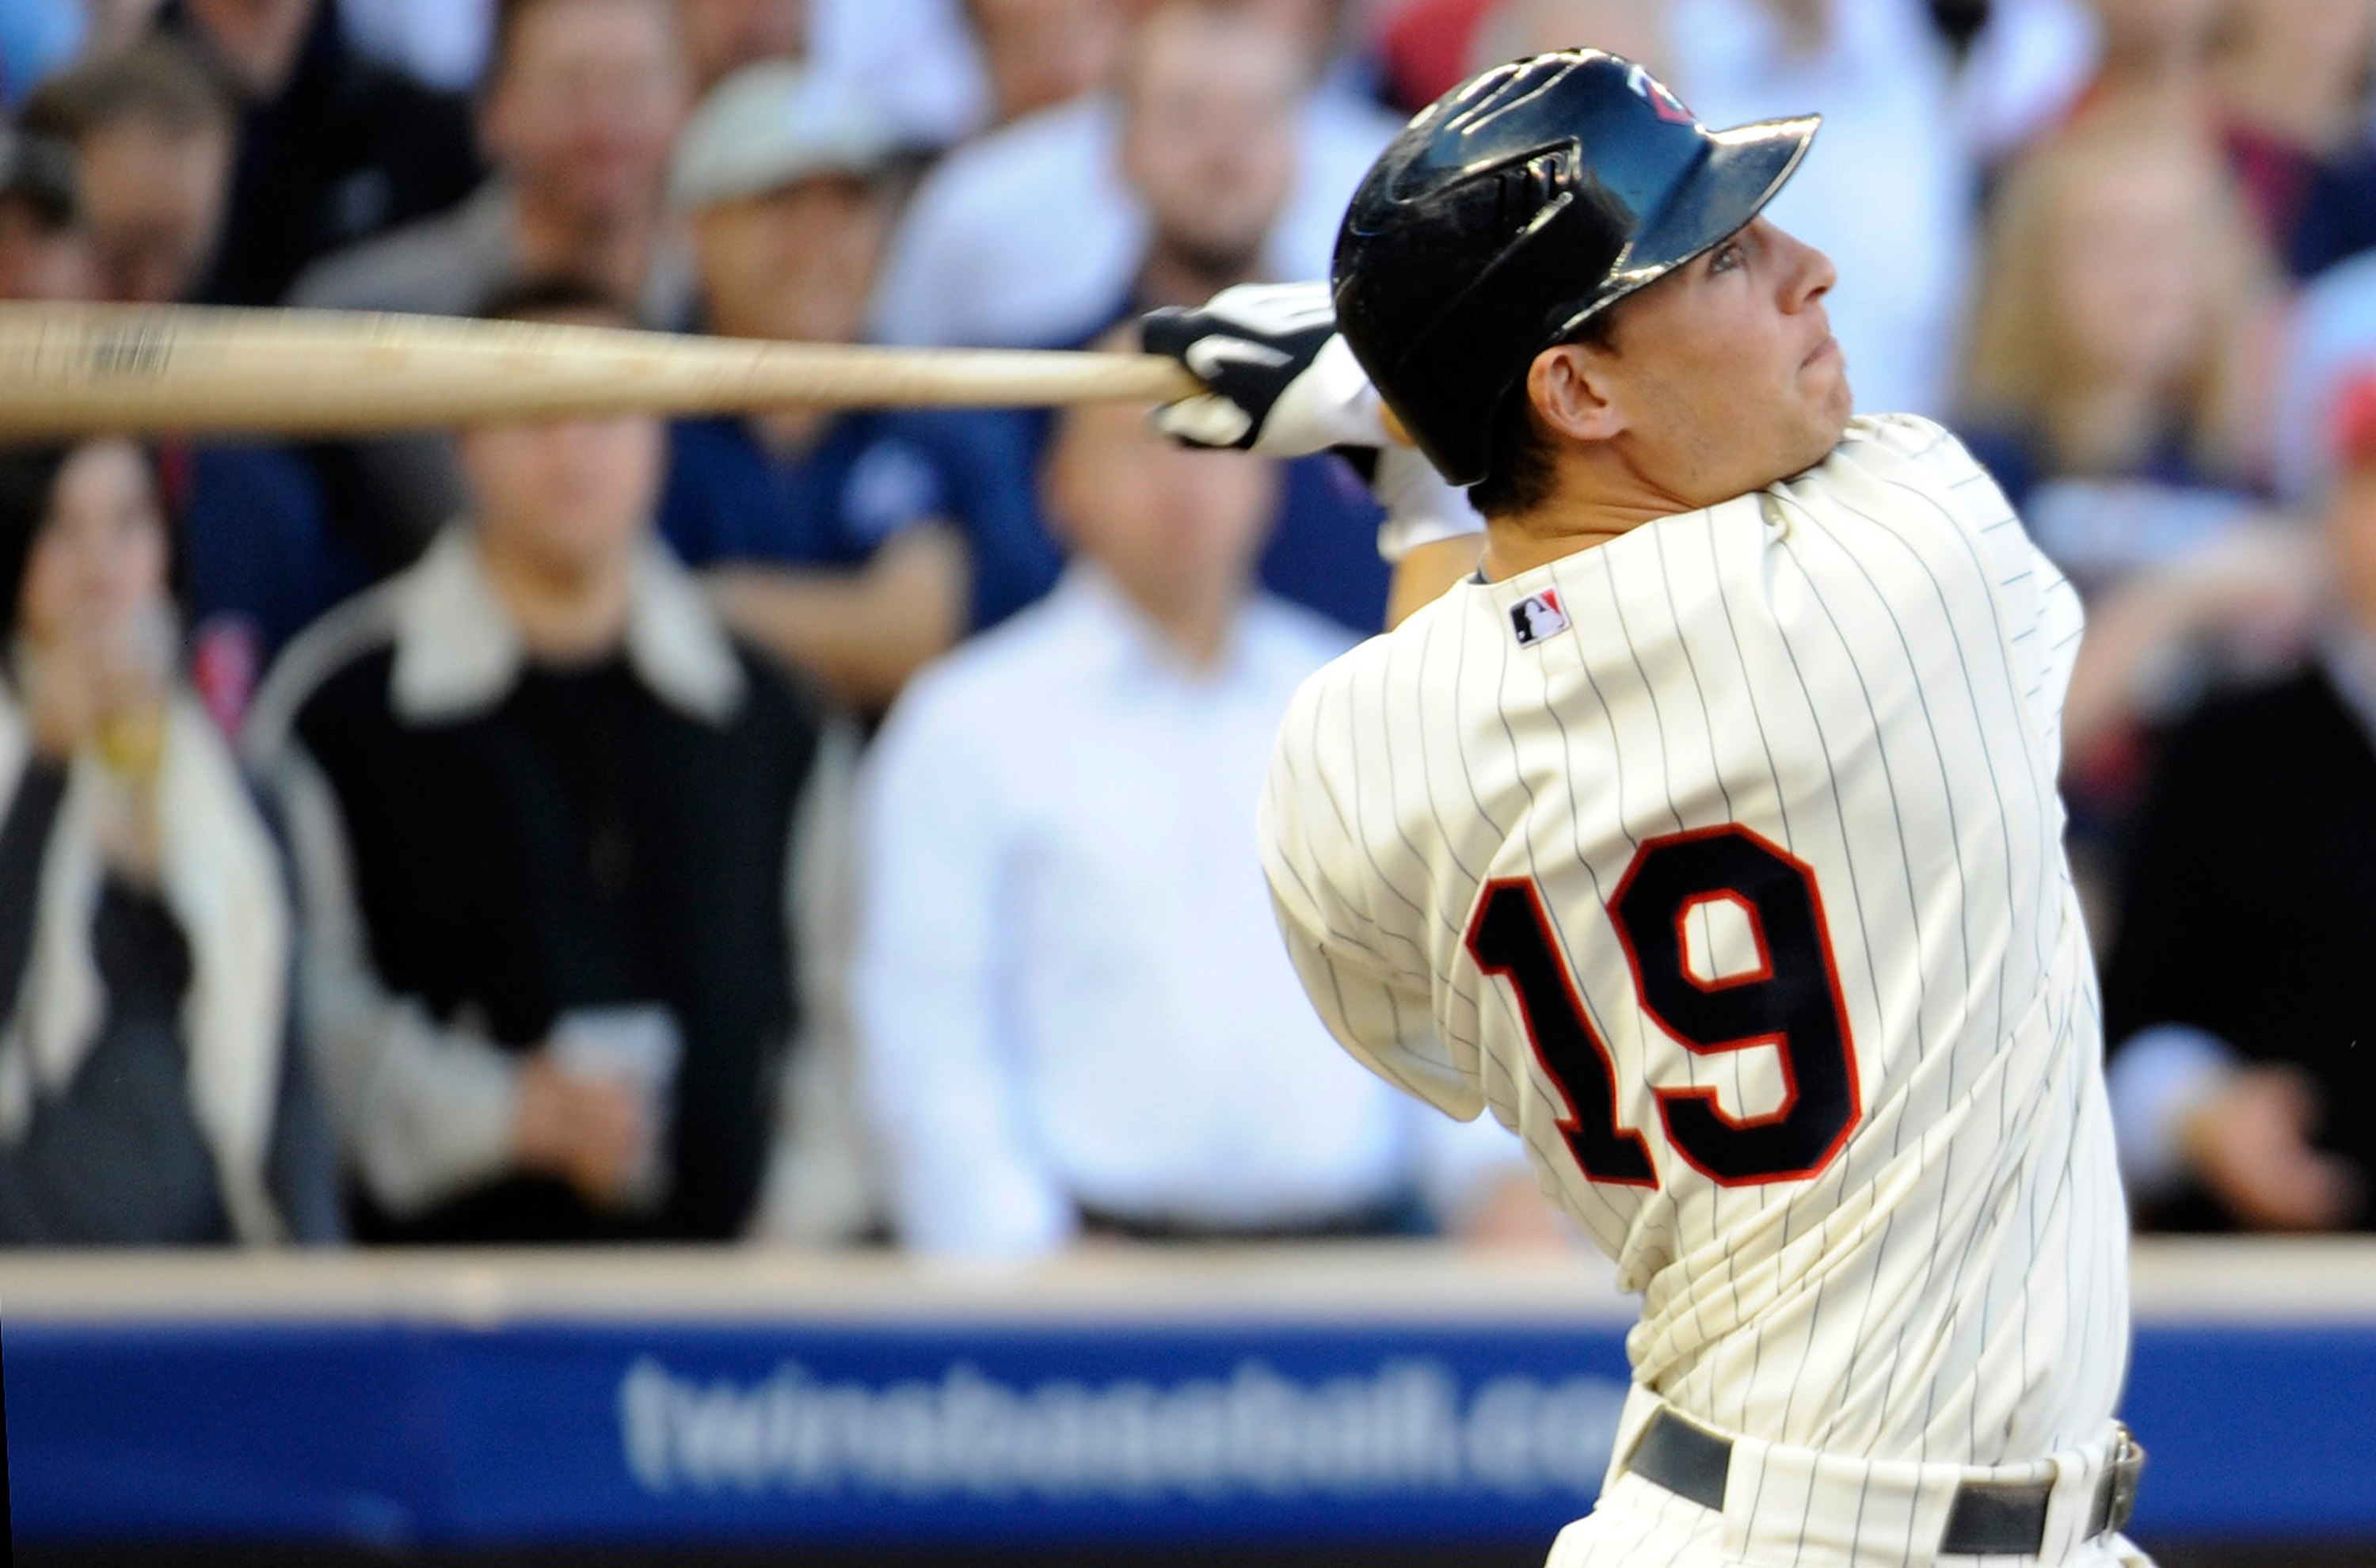 MINNEAPOLIS, MN - OCTOBER 7: Danny Valencia #19 of the Minnesota Twins hits an RBI sacrifice fly in the second inning during game two of the ALDS game against the New York Yankees on October 7, 2010 at Target Field in Minneapolis, Minnesota.  (Photo by Ha